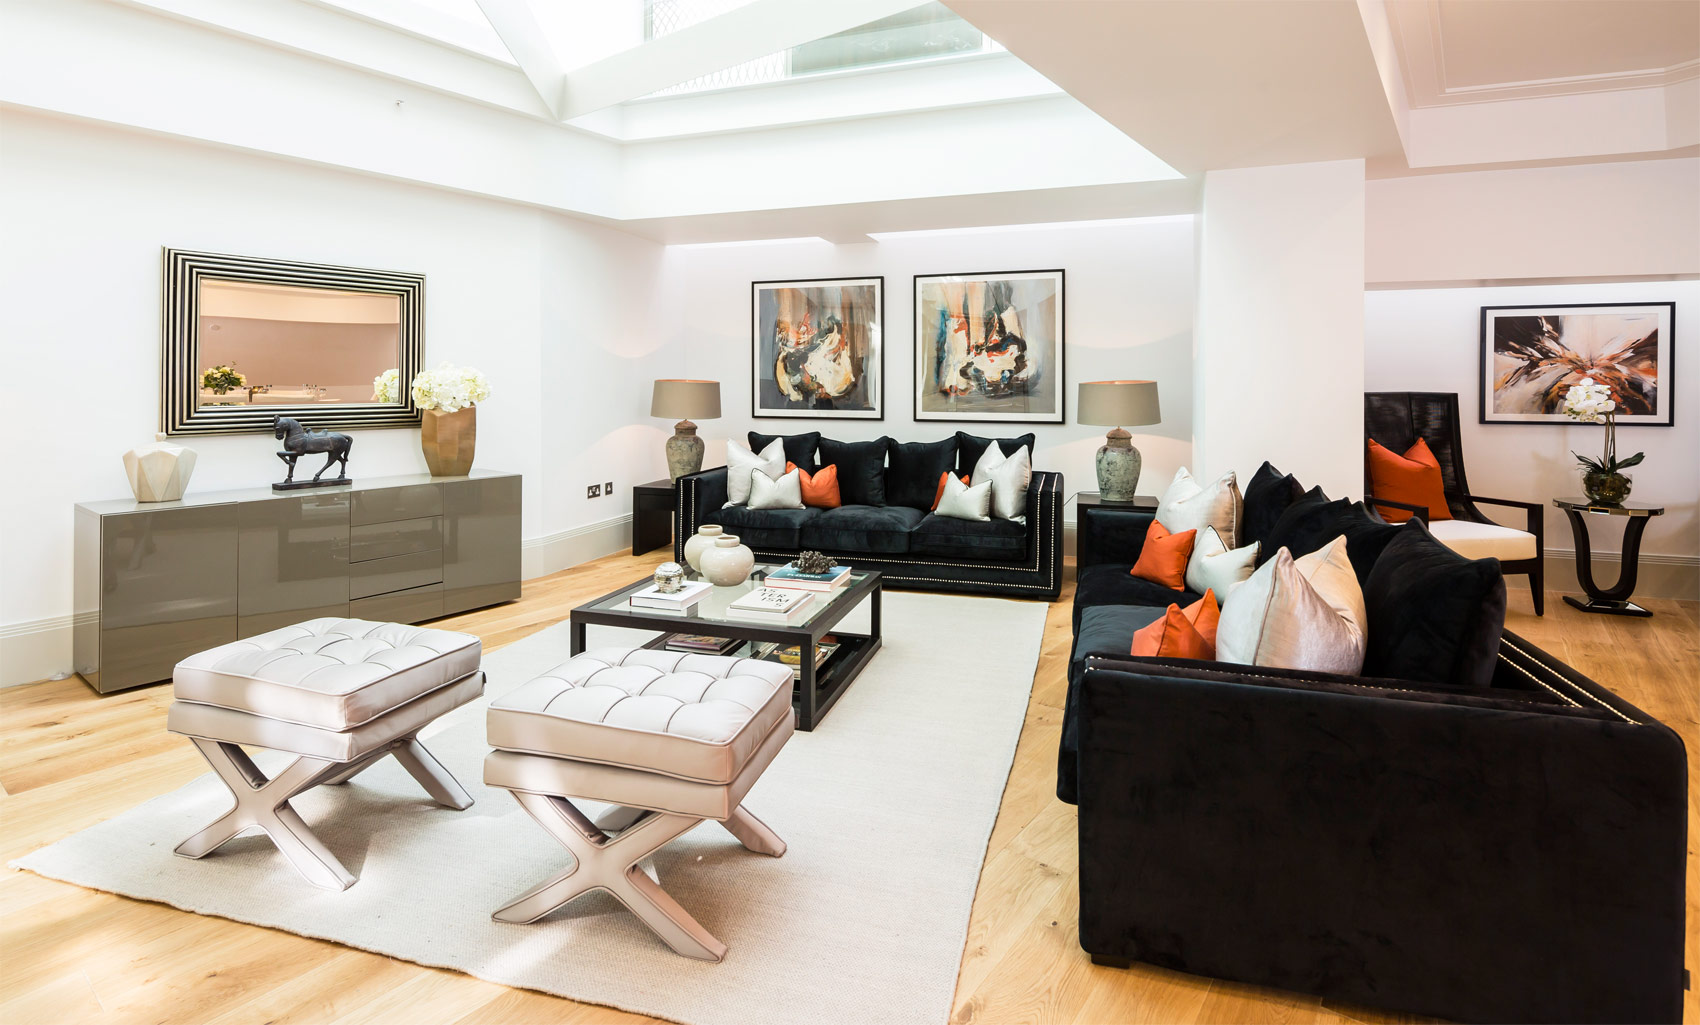 80 Park Lane In London – Probably The World's Most Luxurious Student Digs